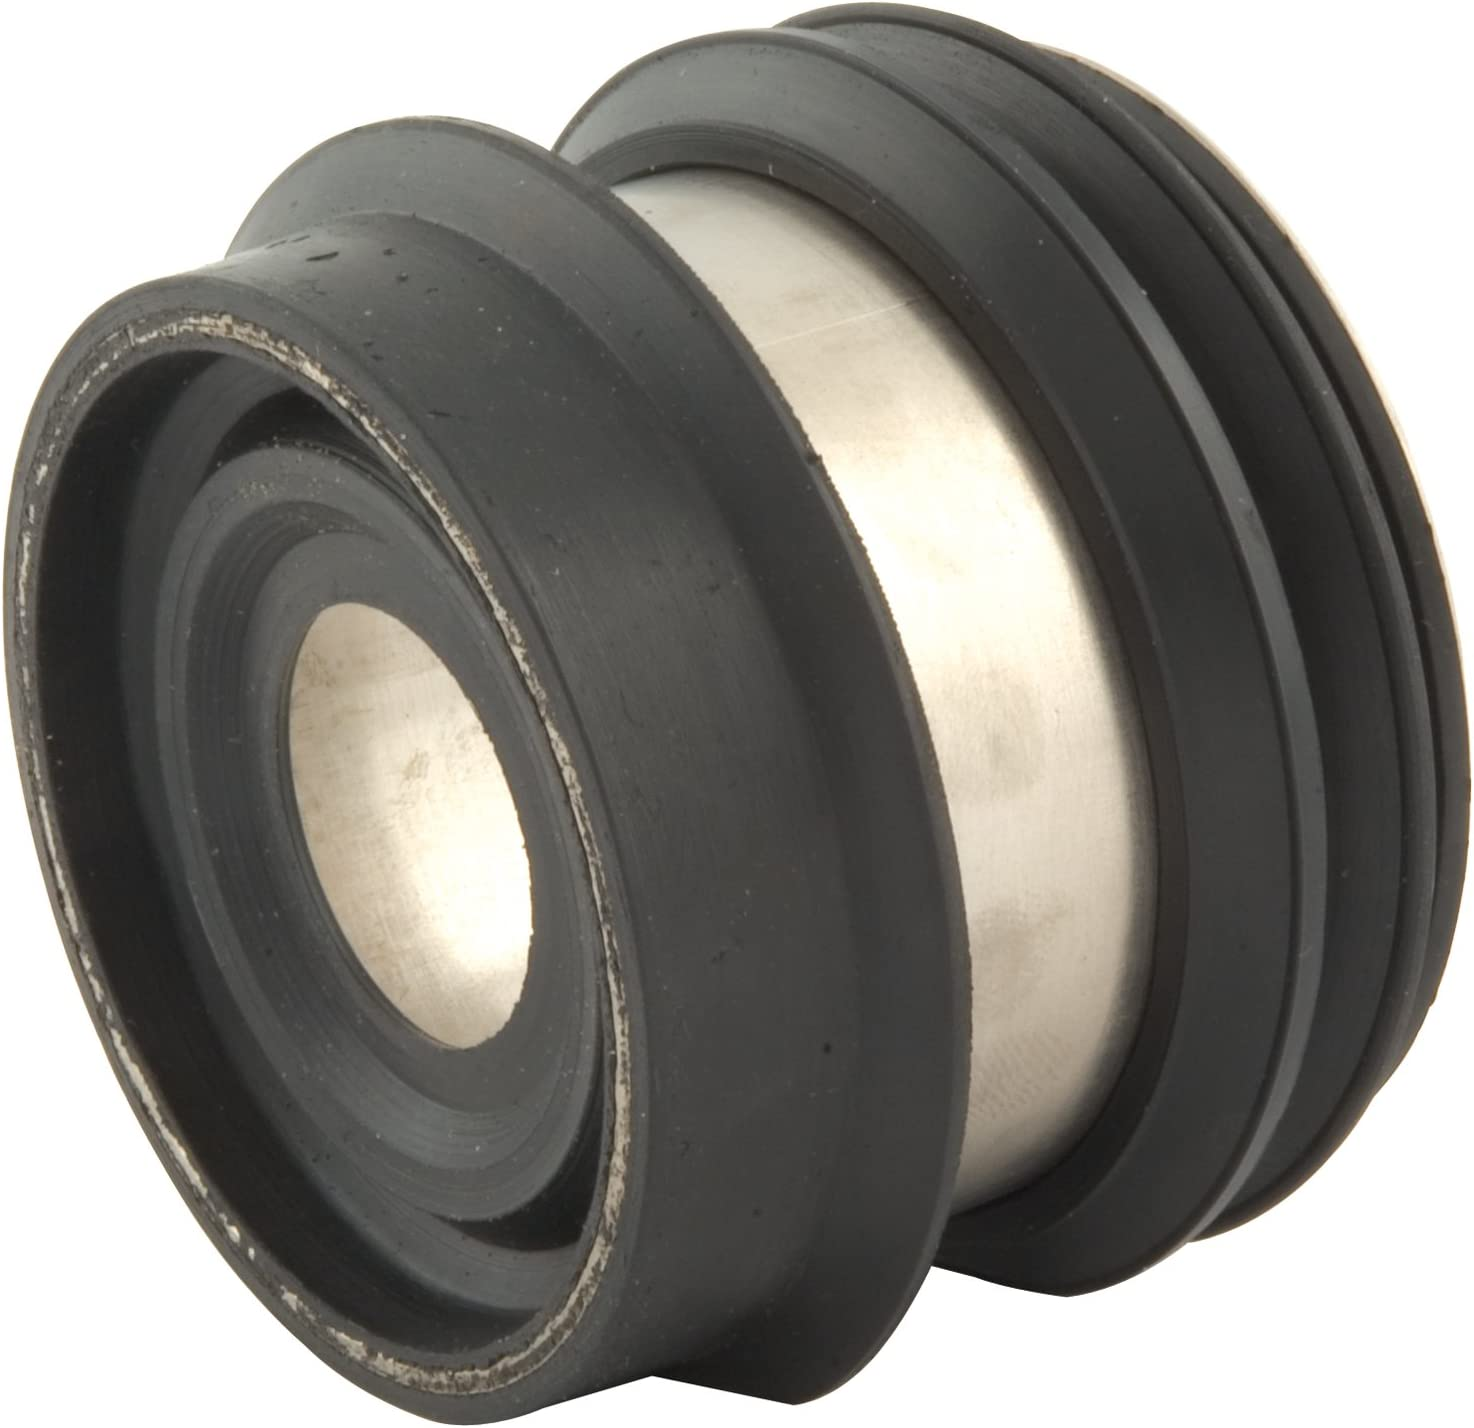 Indefinitely Allstar ALL72098 Universal Fit Bellows Axle Seal Housing Style Sale SALE% OFF